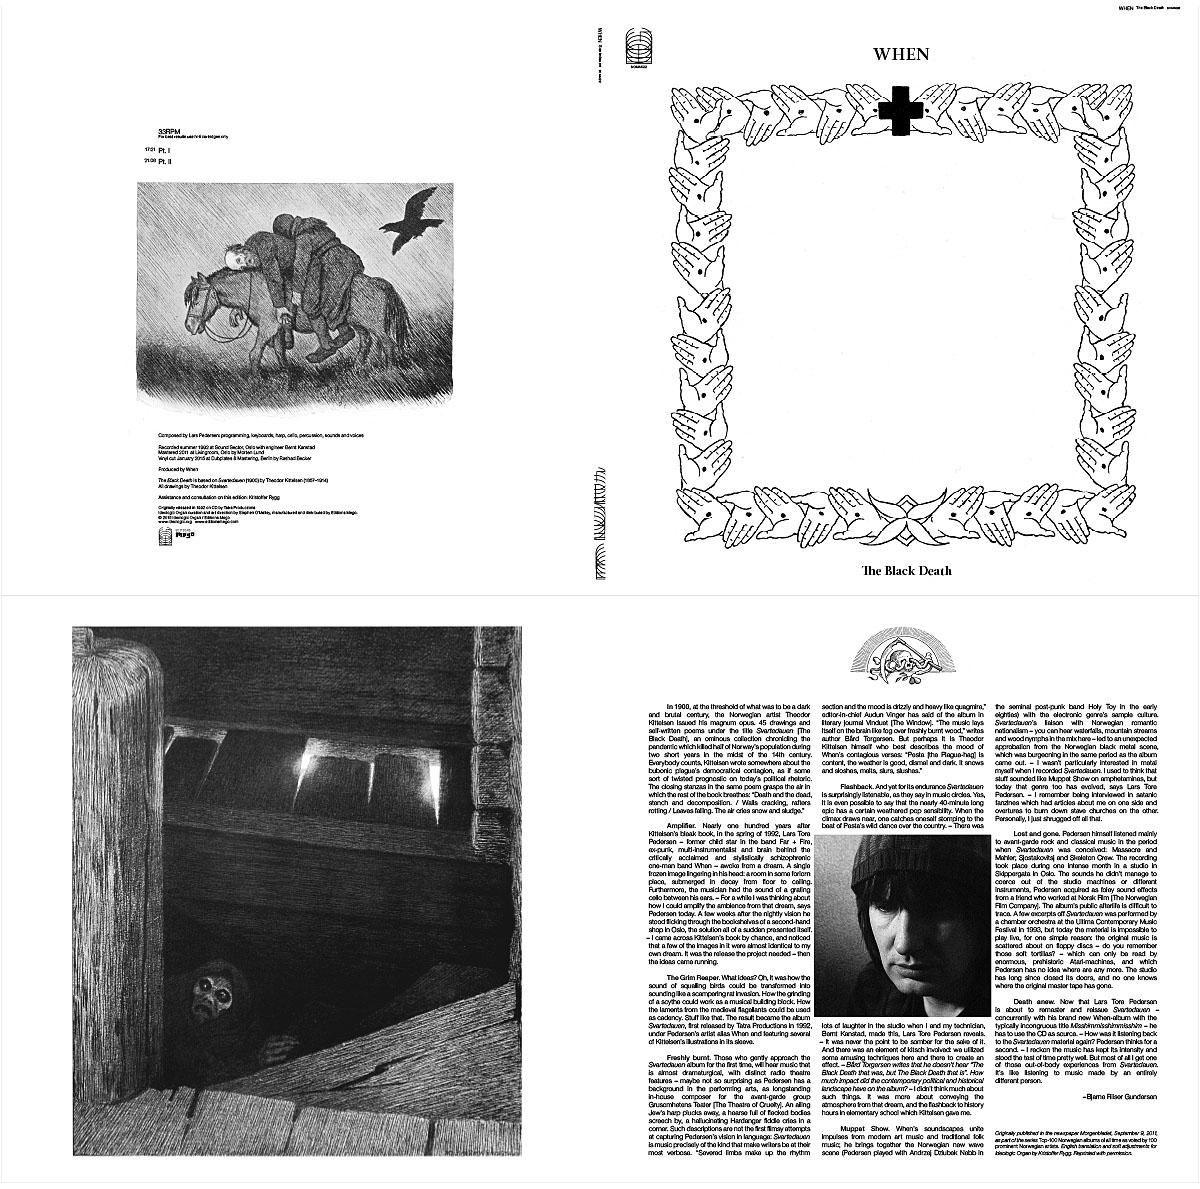 "SOMA022 When ""The Black Death"" gatefold LP now available for preorder"